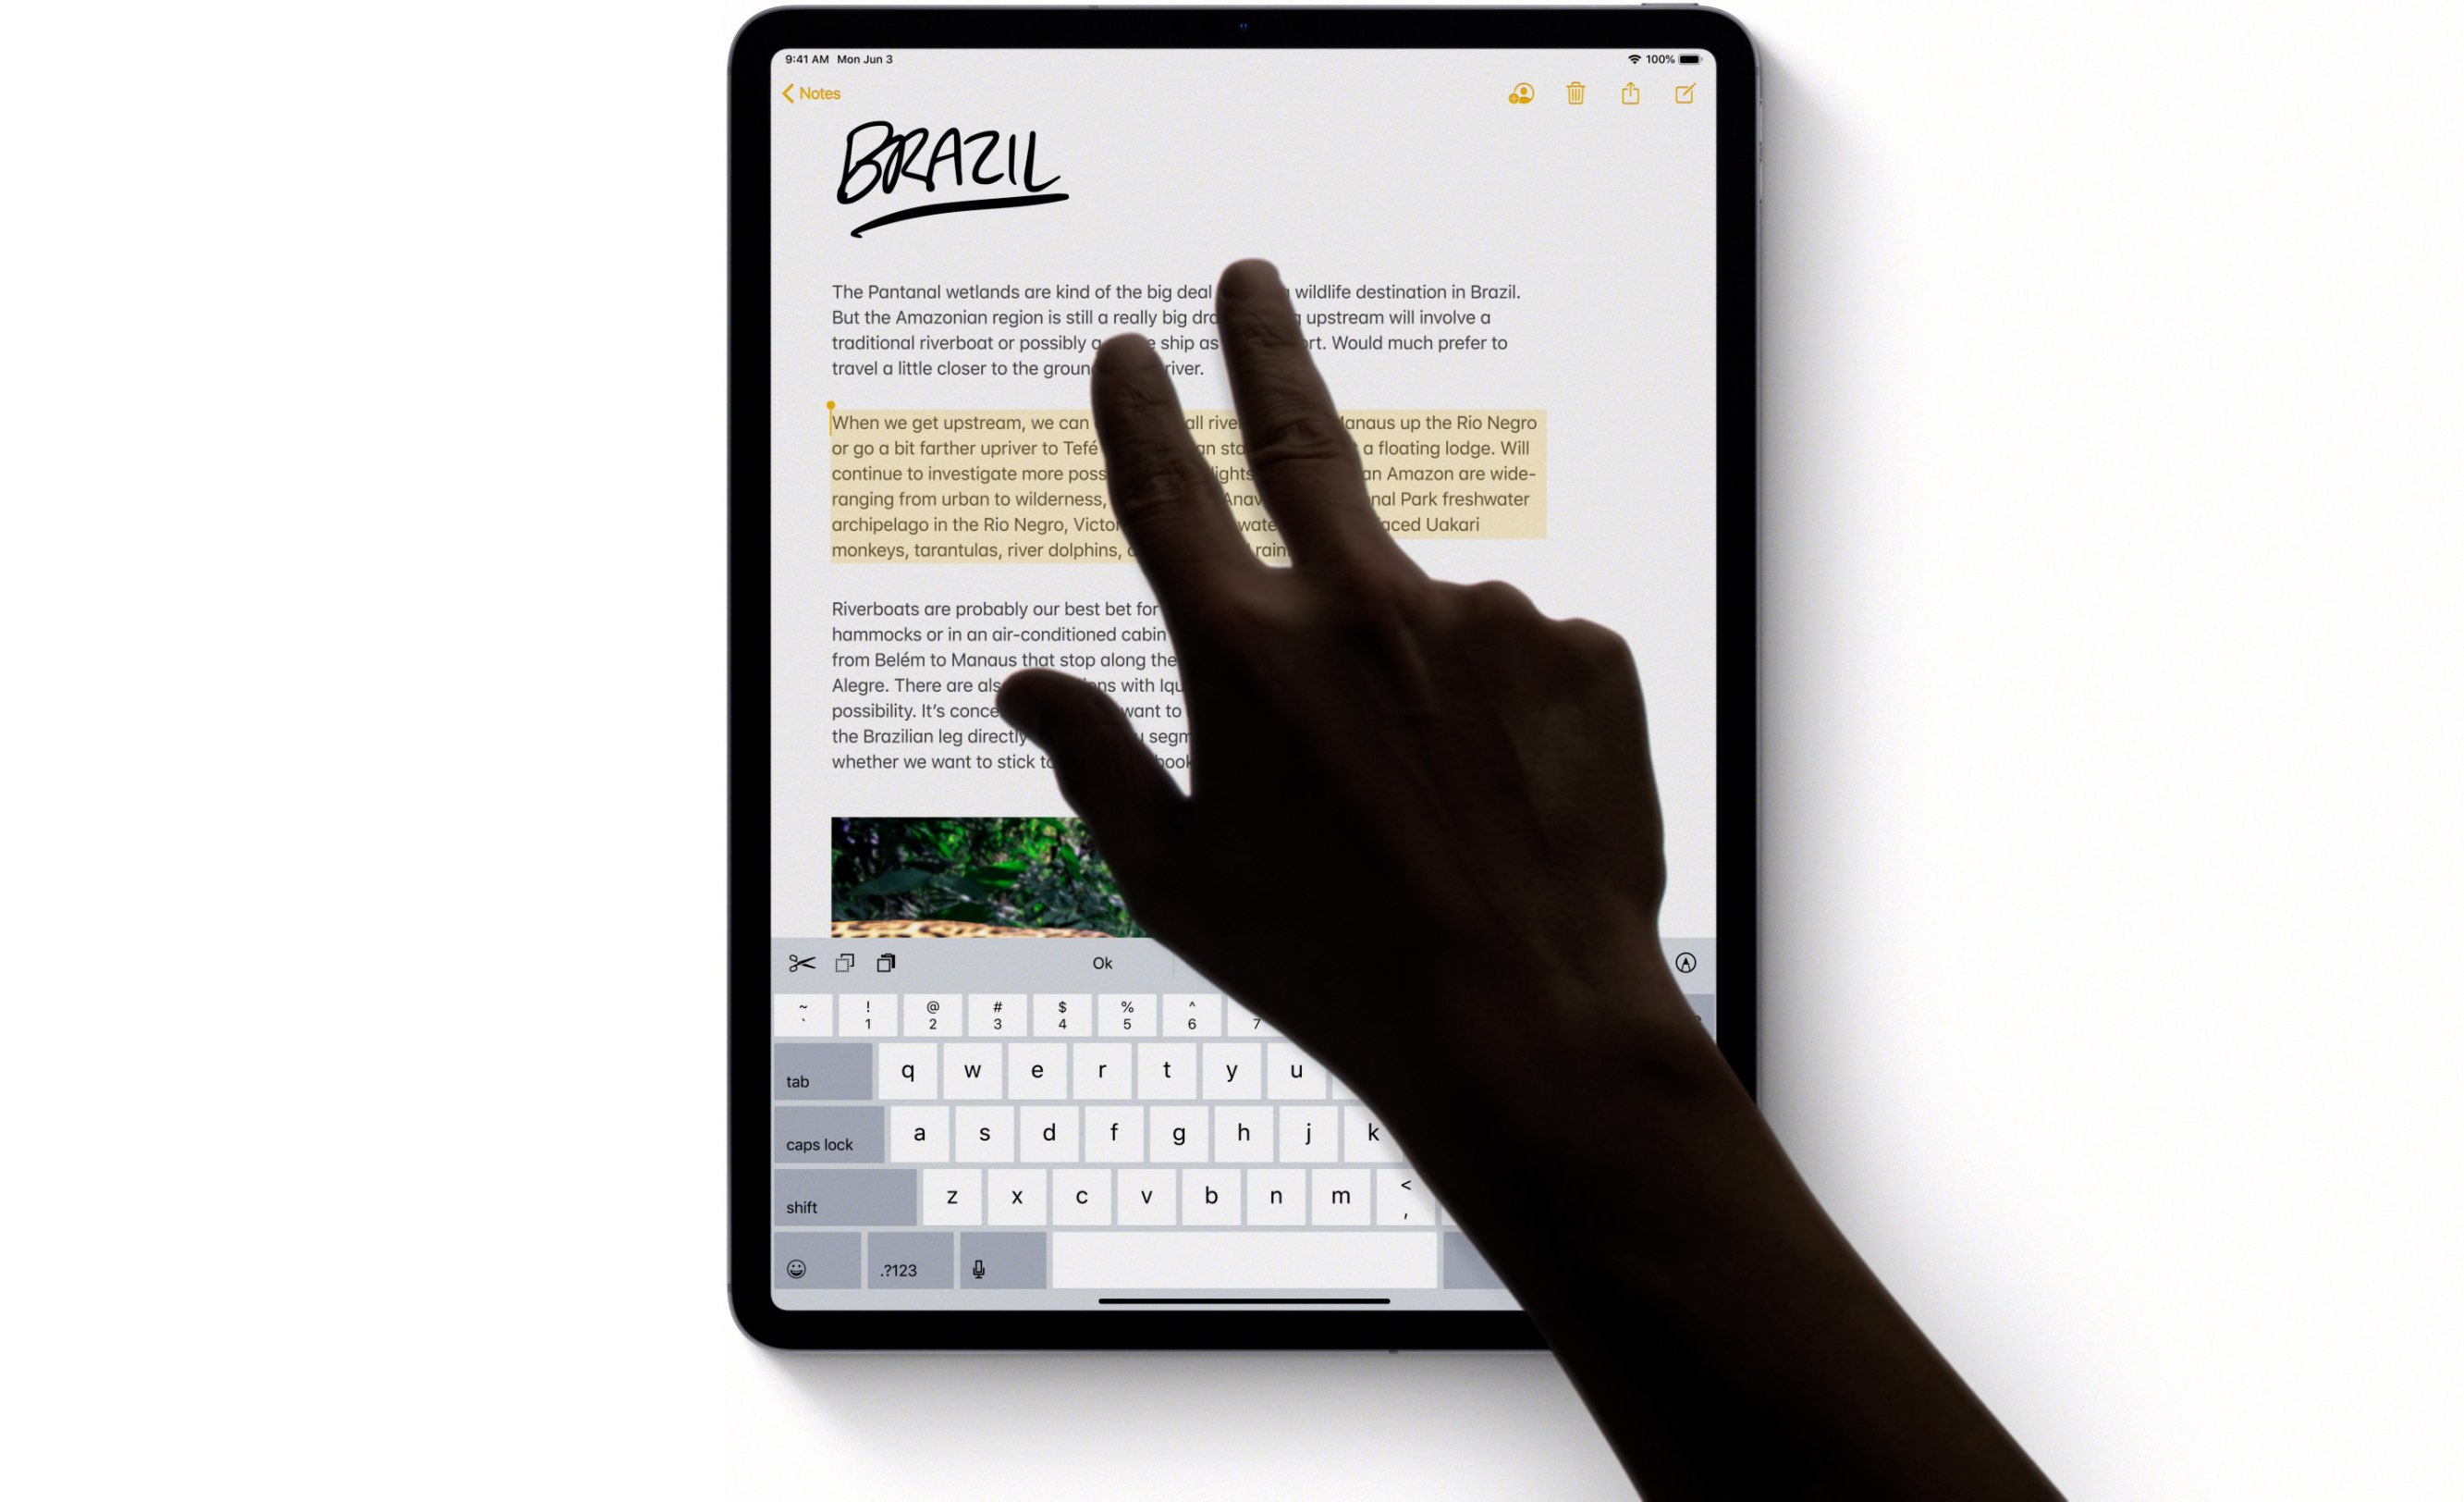 iOS 13 brings new gestures for cursor navigation, text selections